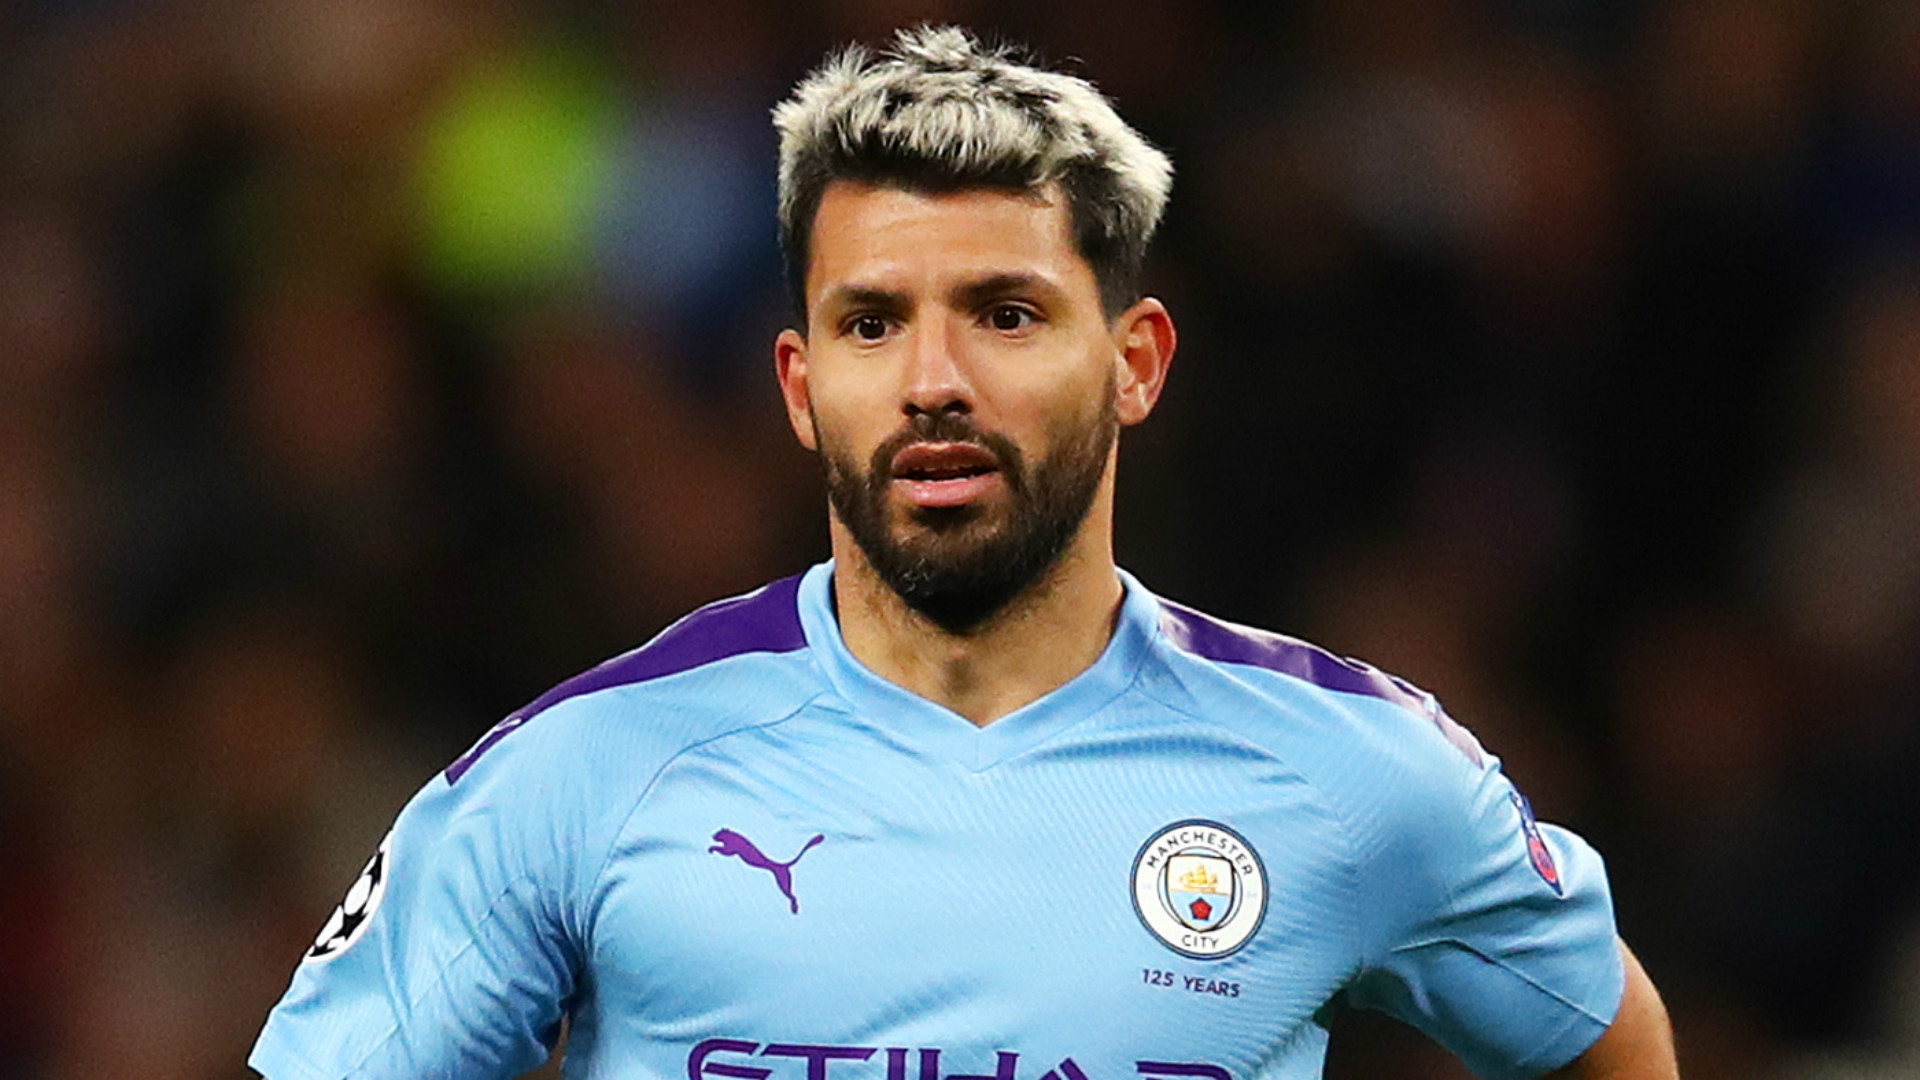 Man city forward crashes car ahead of EPL return